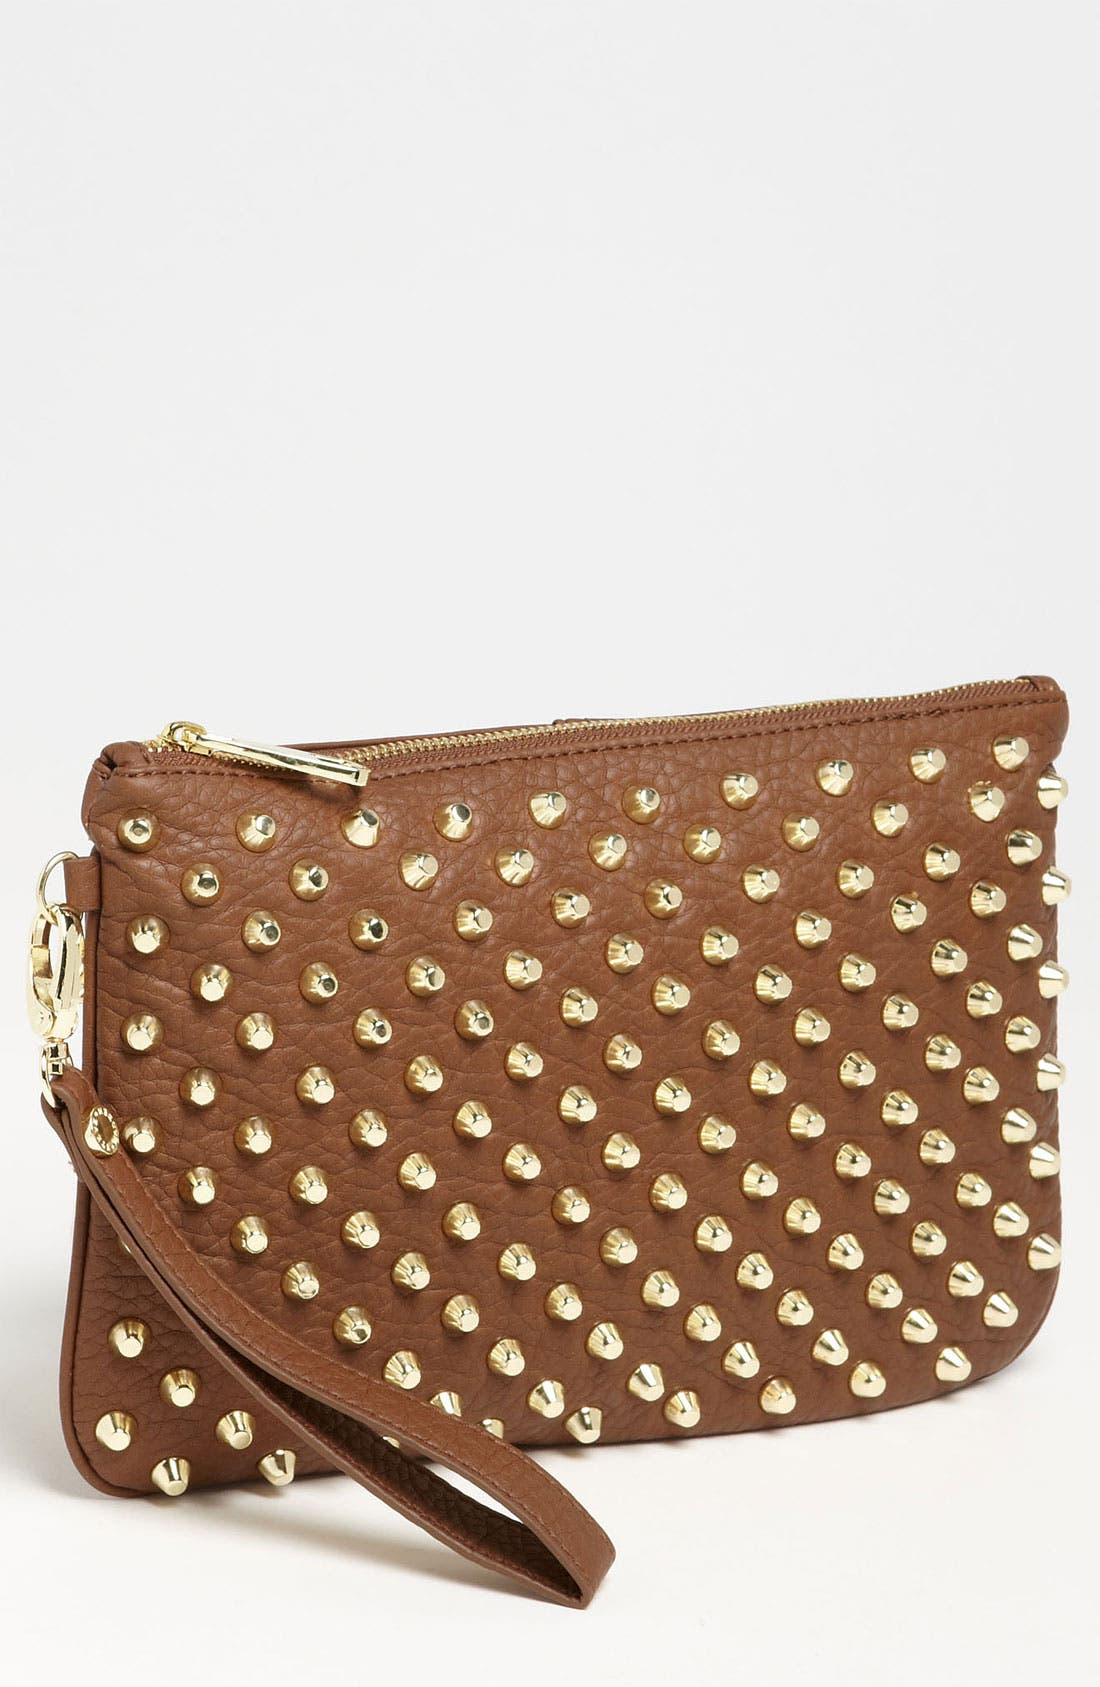 Main Image - Steve Madden 'Stud Love - Small' Clutch